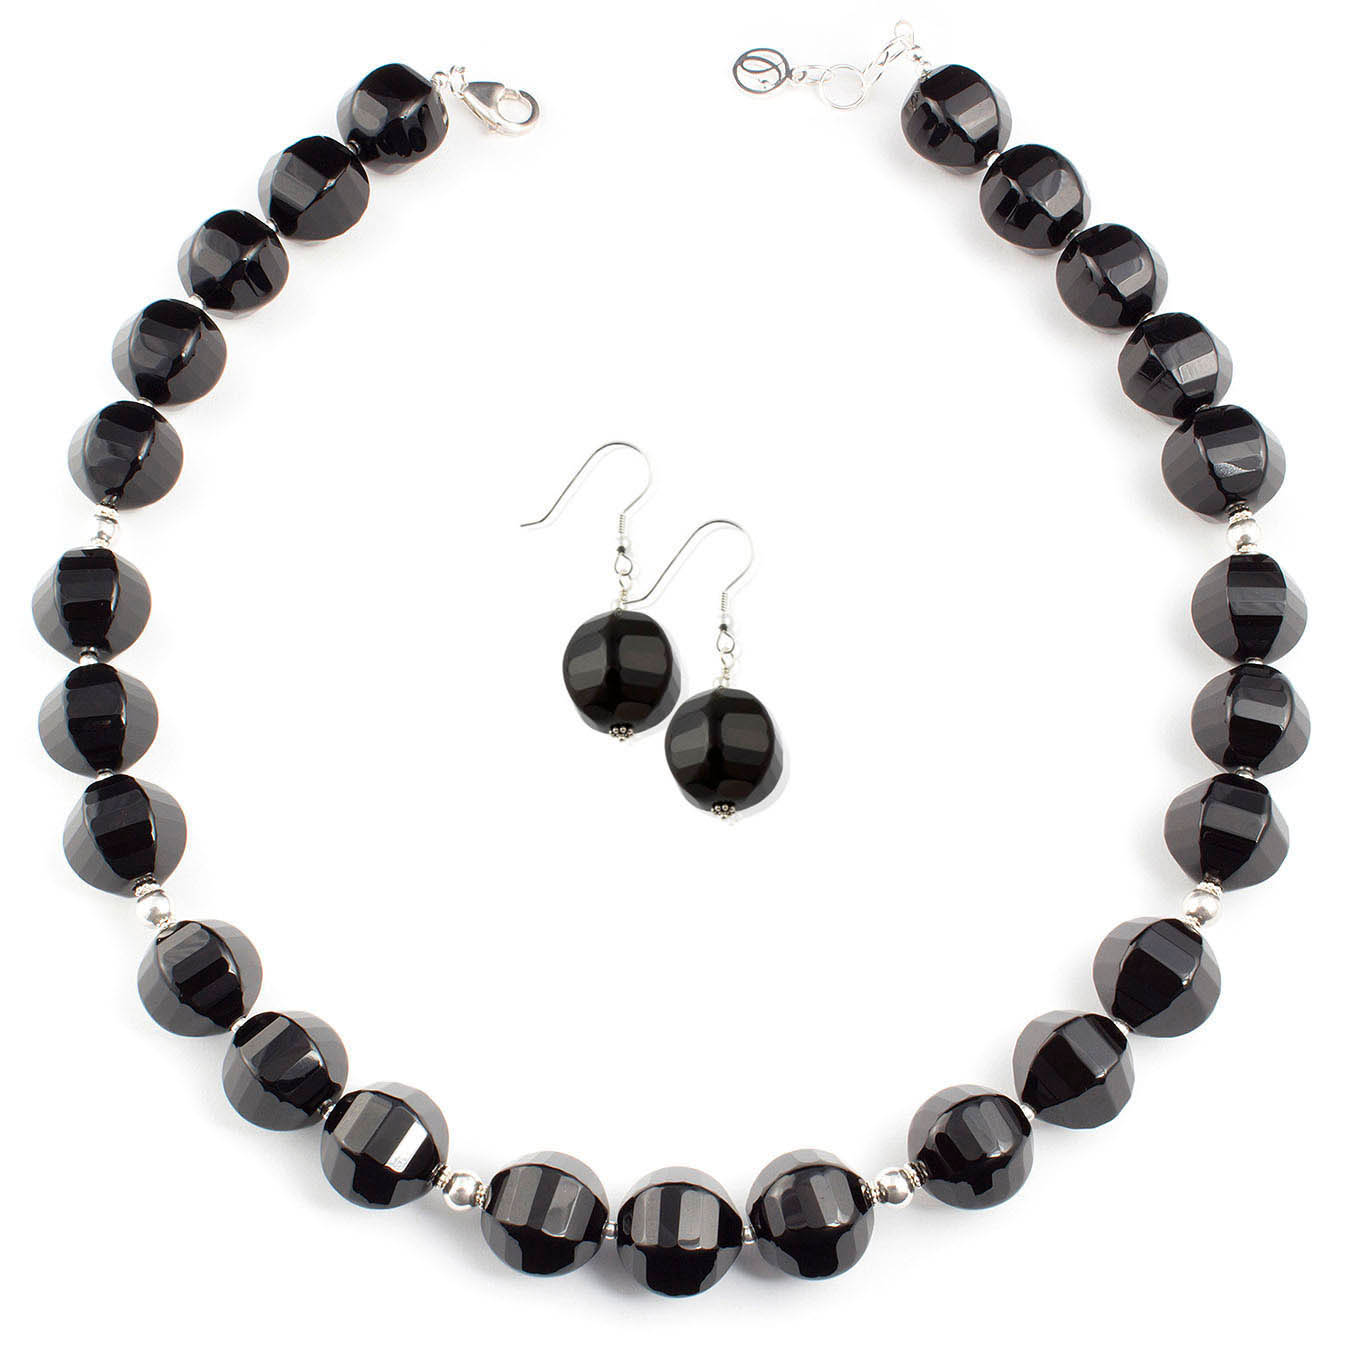 Stone black agate handmade jewelry necklace accented with silver beads